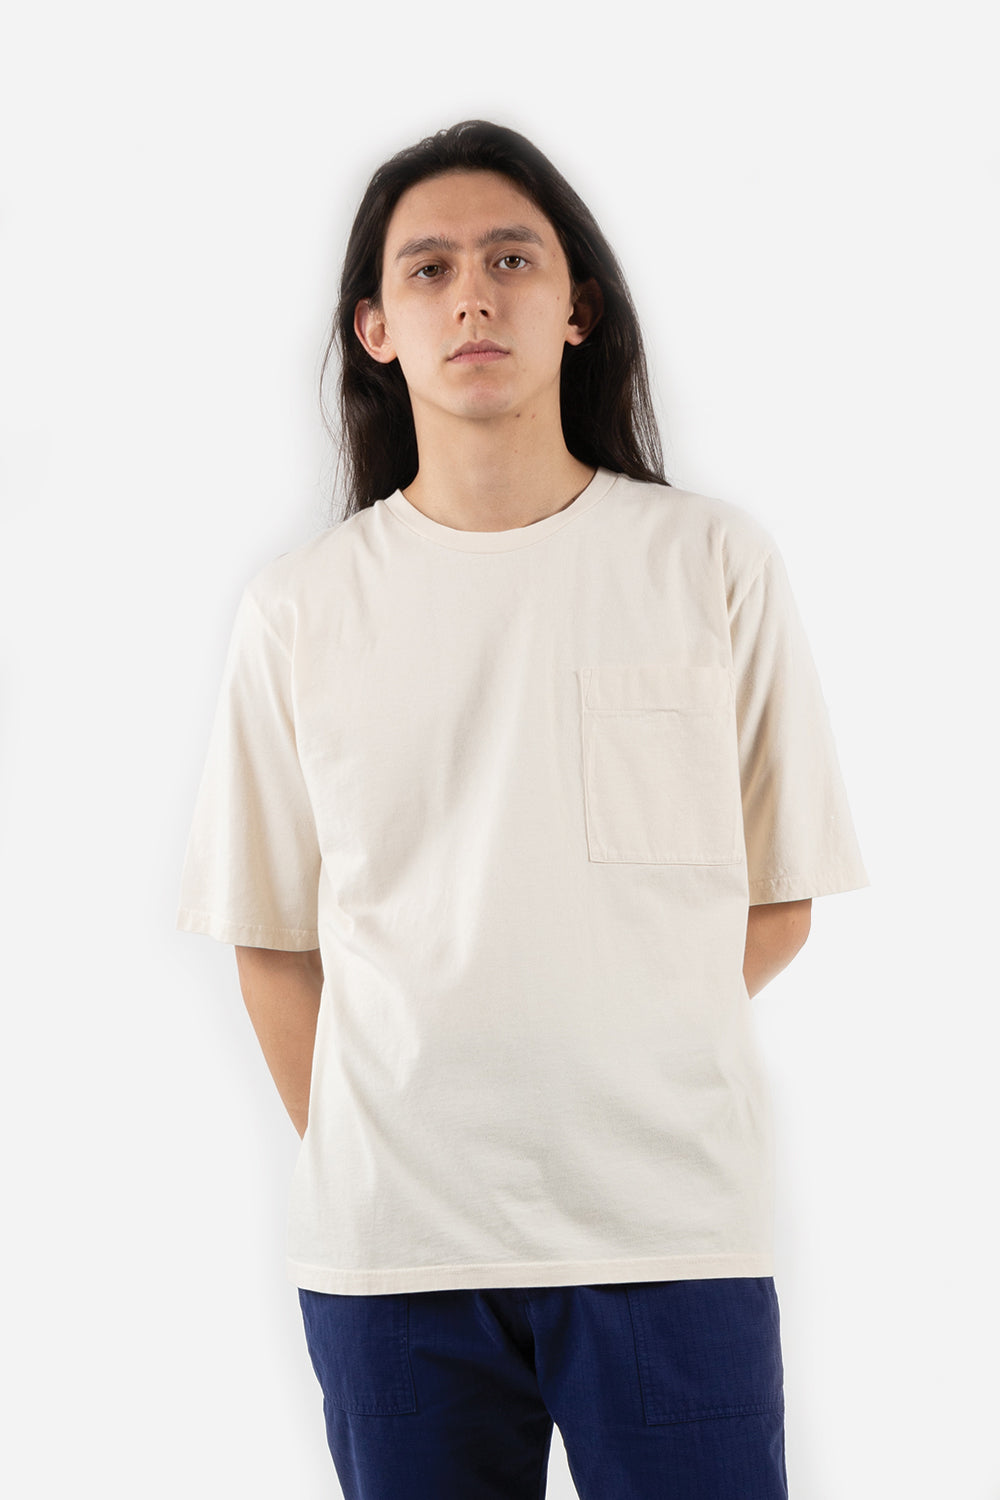 outland-big-tee-shirt-off-white